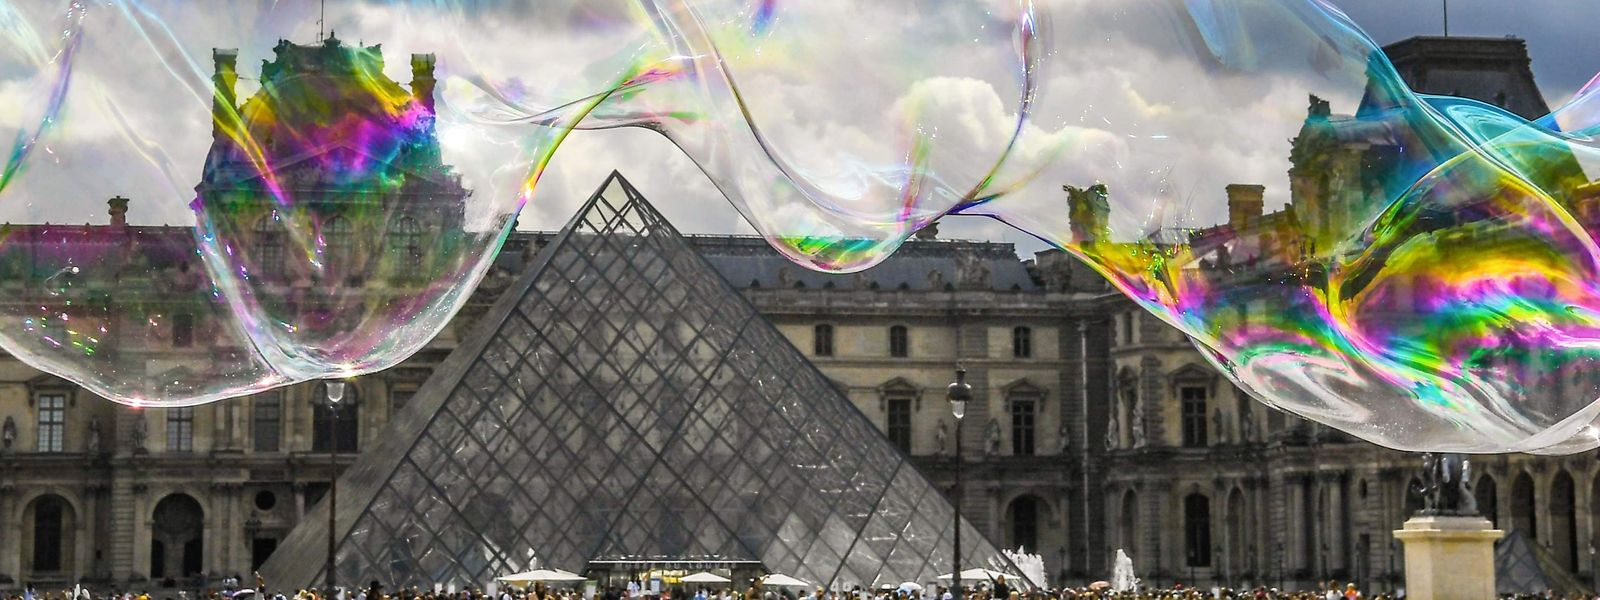 The Louvre pyramid in front of the Louvre museum in Paris is seen through soap bubbles on July 19, 2019. (Photo by ALAIN JOCARD / AFP)